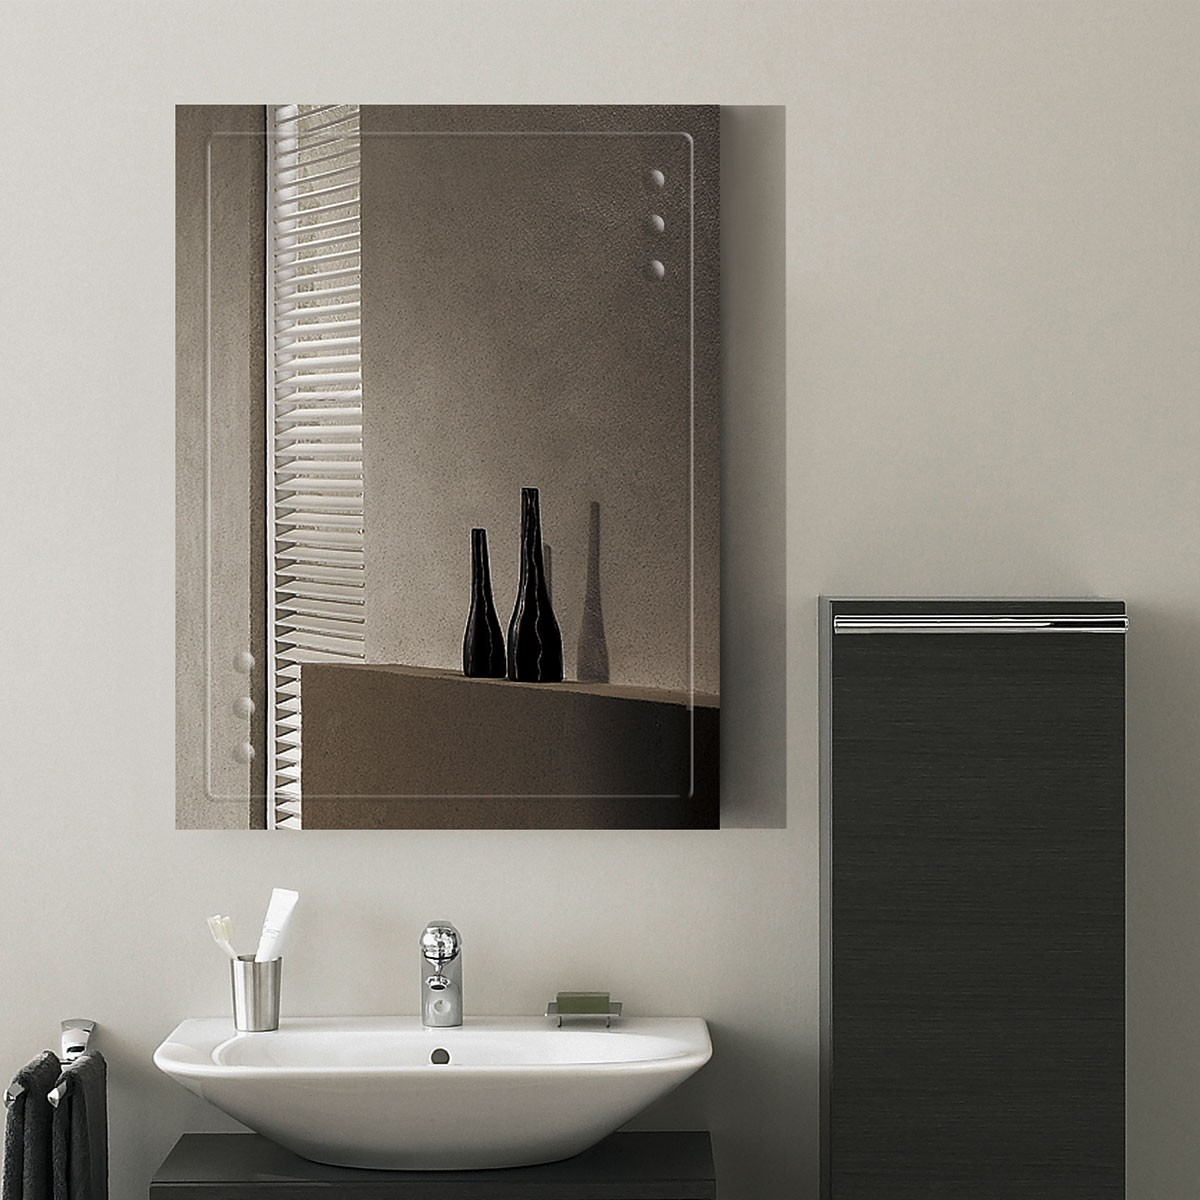 24 x 18 In. Wall-mounted Rectangle Bathroom Mirror (DK-OD-B047C)